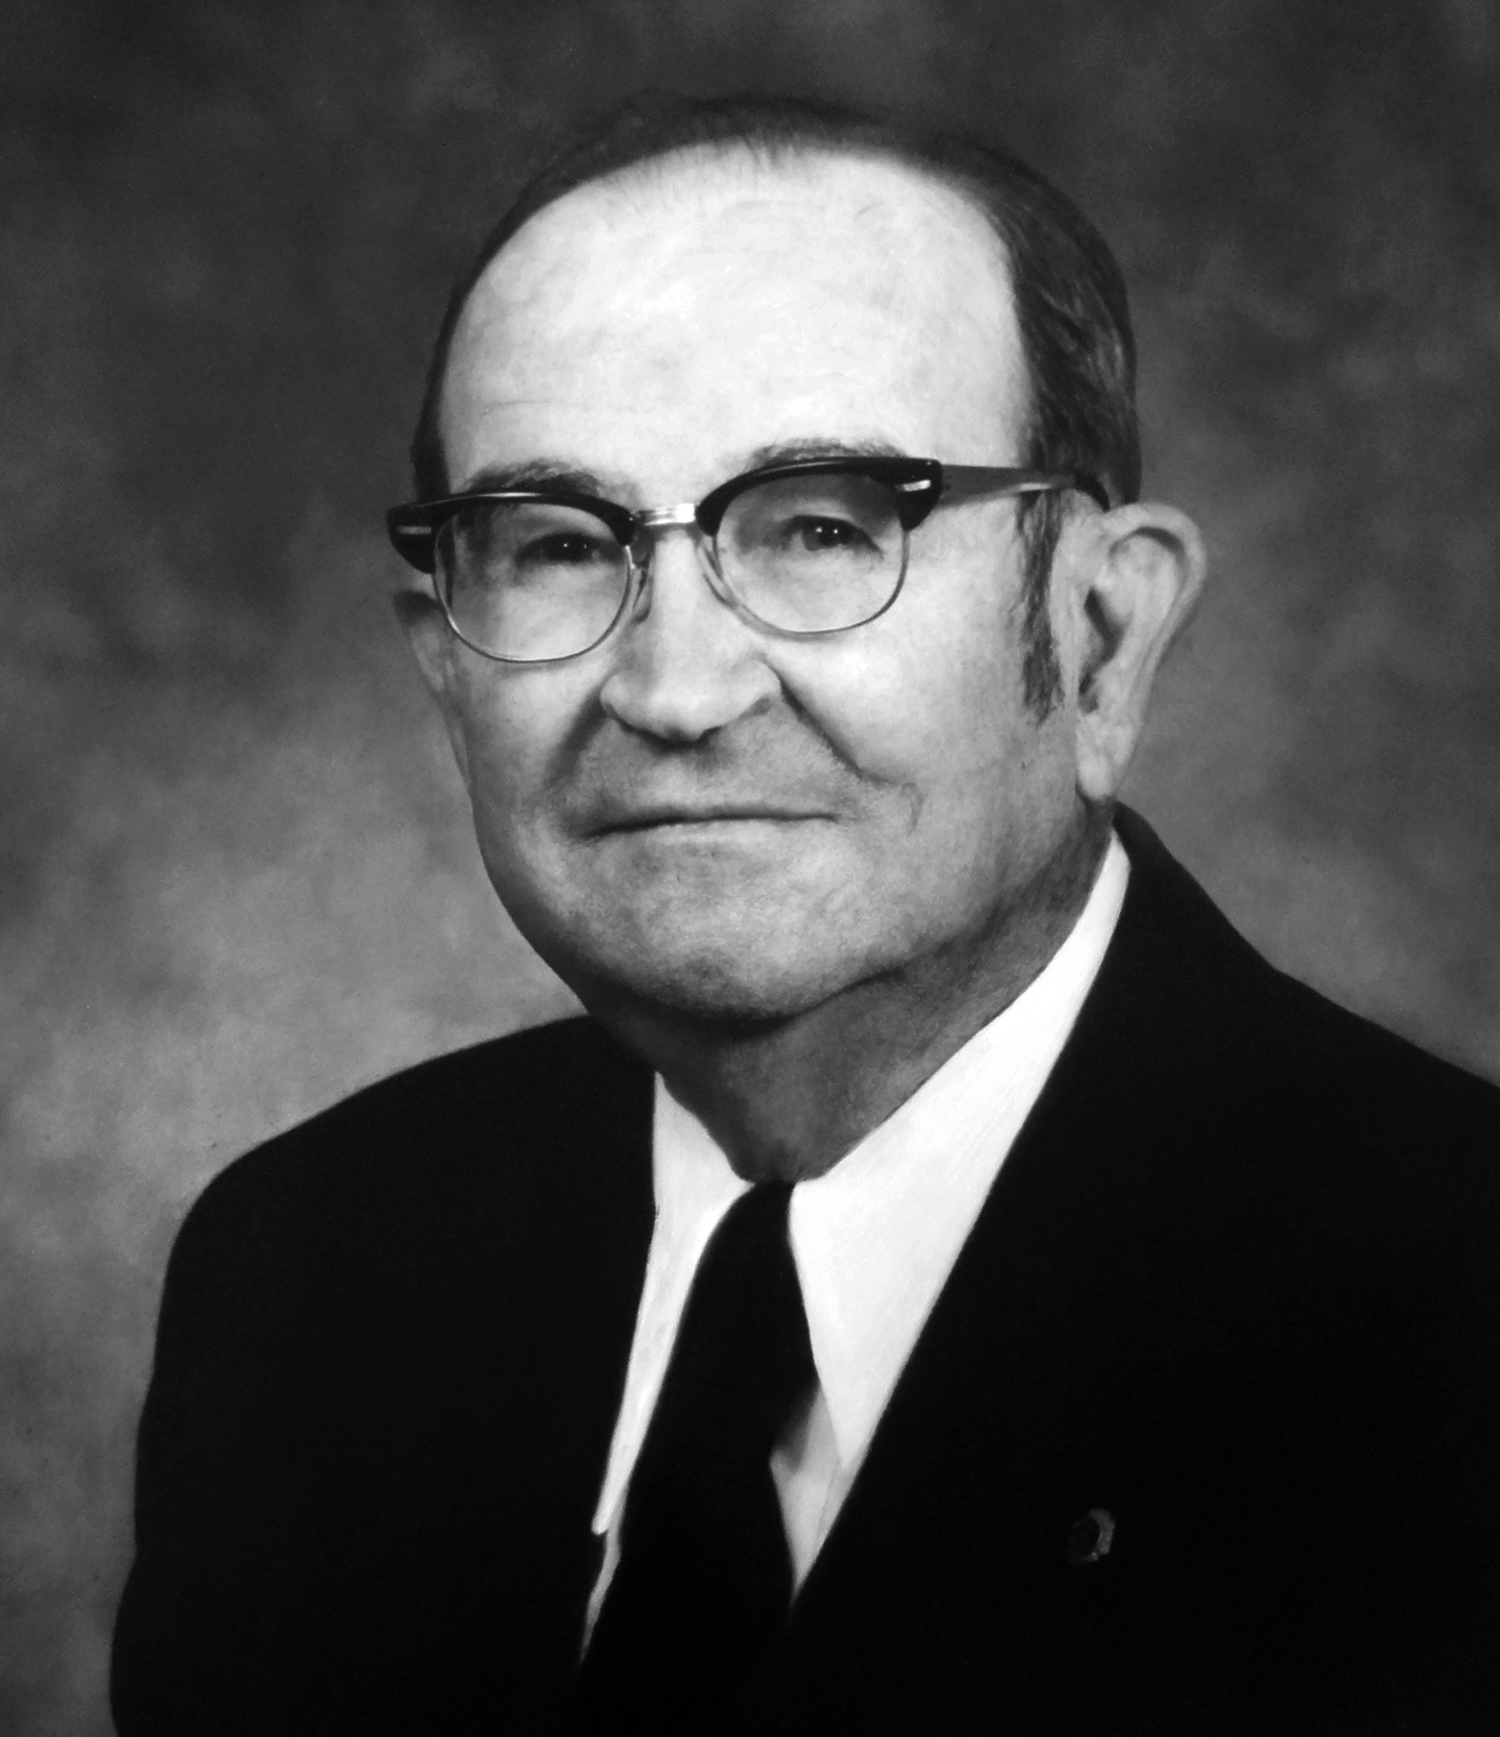 Roy T. Hoke, Sr., early major gift donor to the Foundation